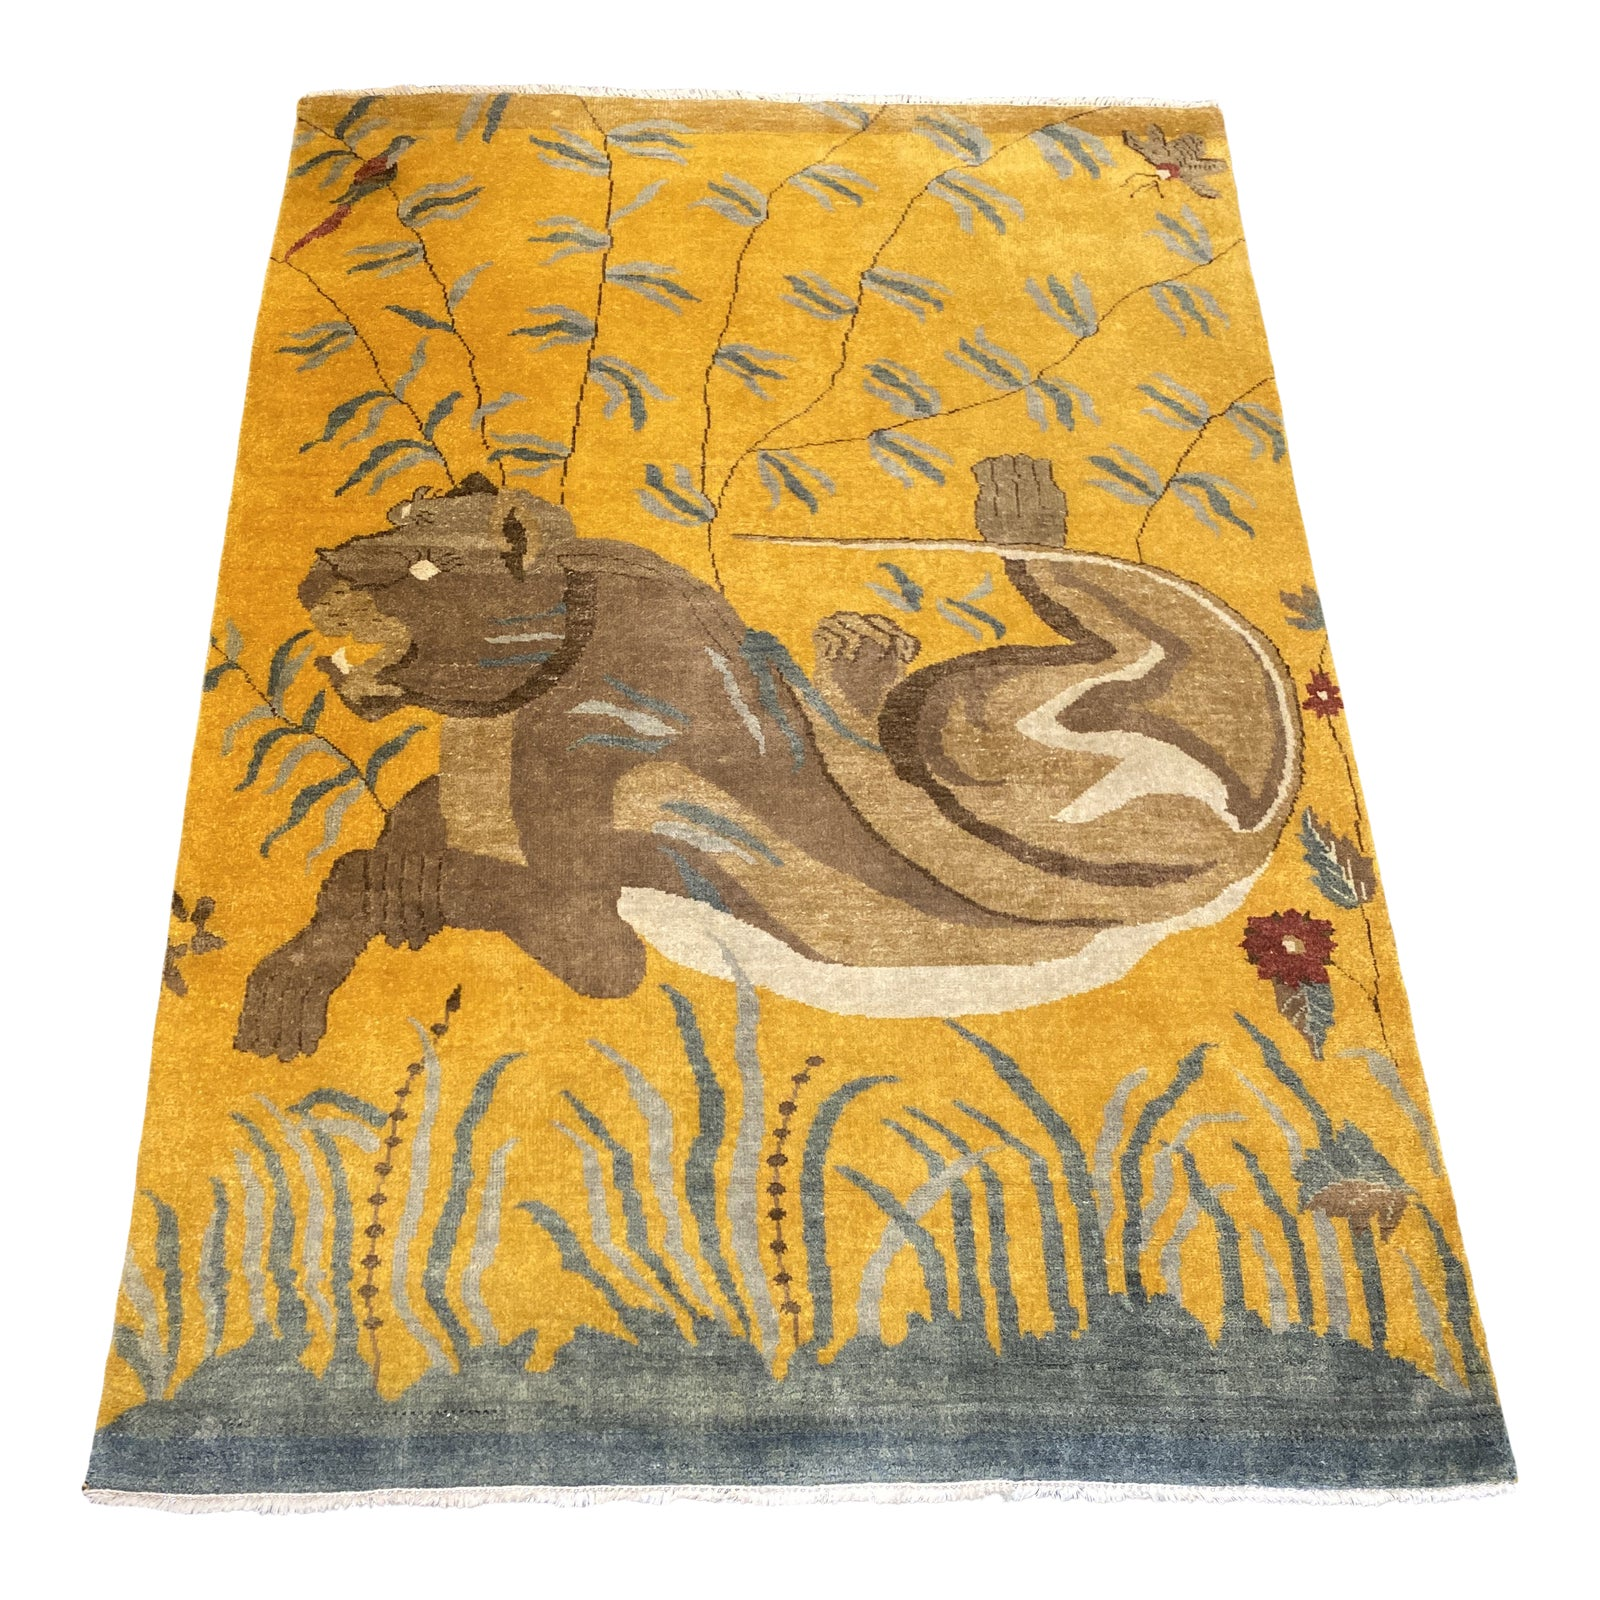 Tufenkian Hand Knotted Lioness Wool Mohair Area Rug 5 6 7 10 Design Plus Gallery